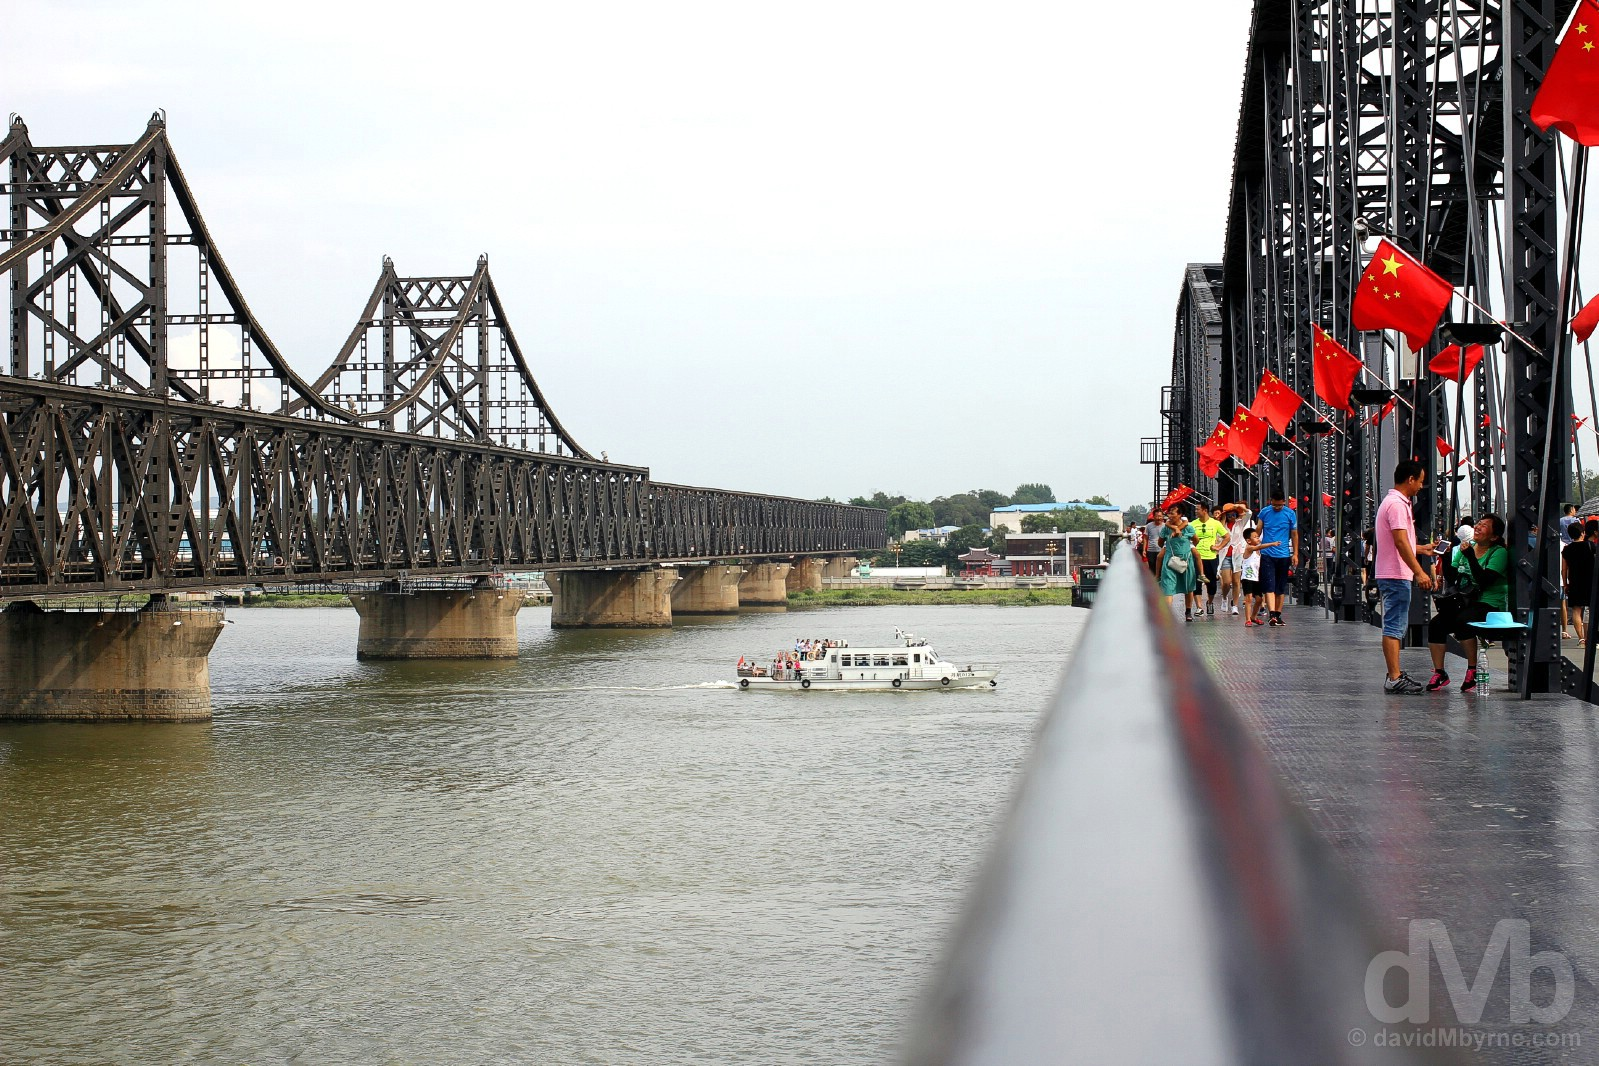 As seen from the Broken Bridge of the Yalu River in Dandong, Liaoning province, China. August 13, 2017.